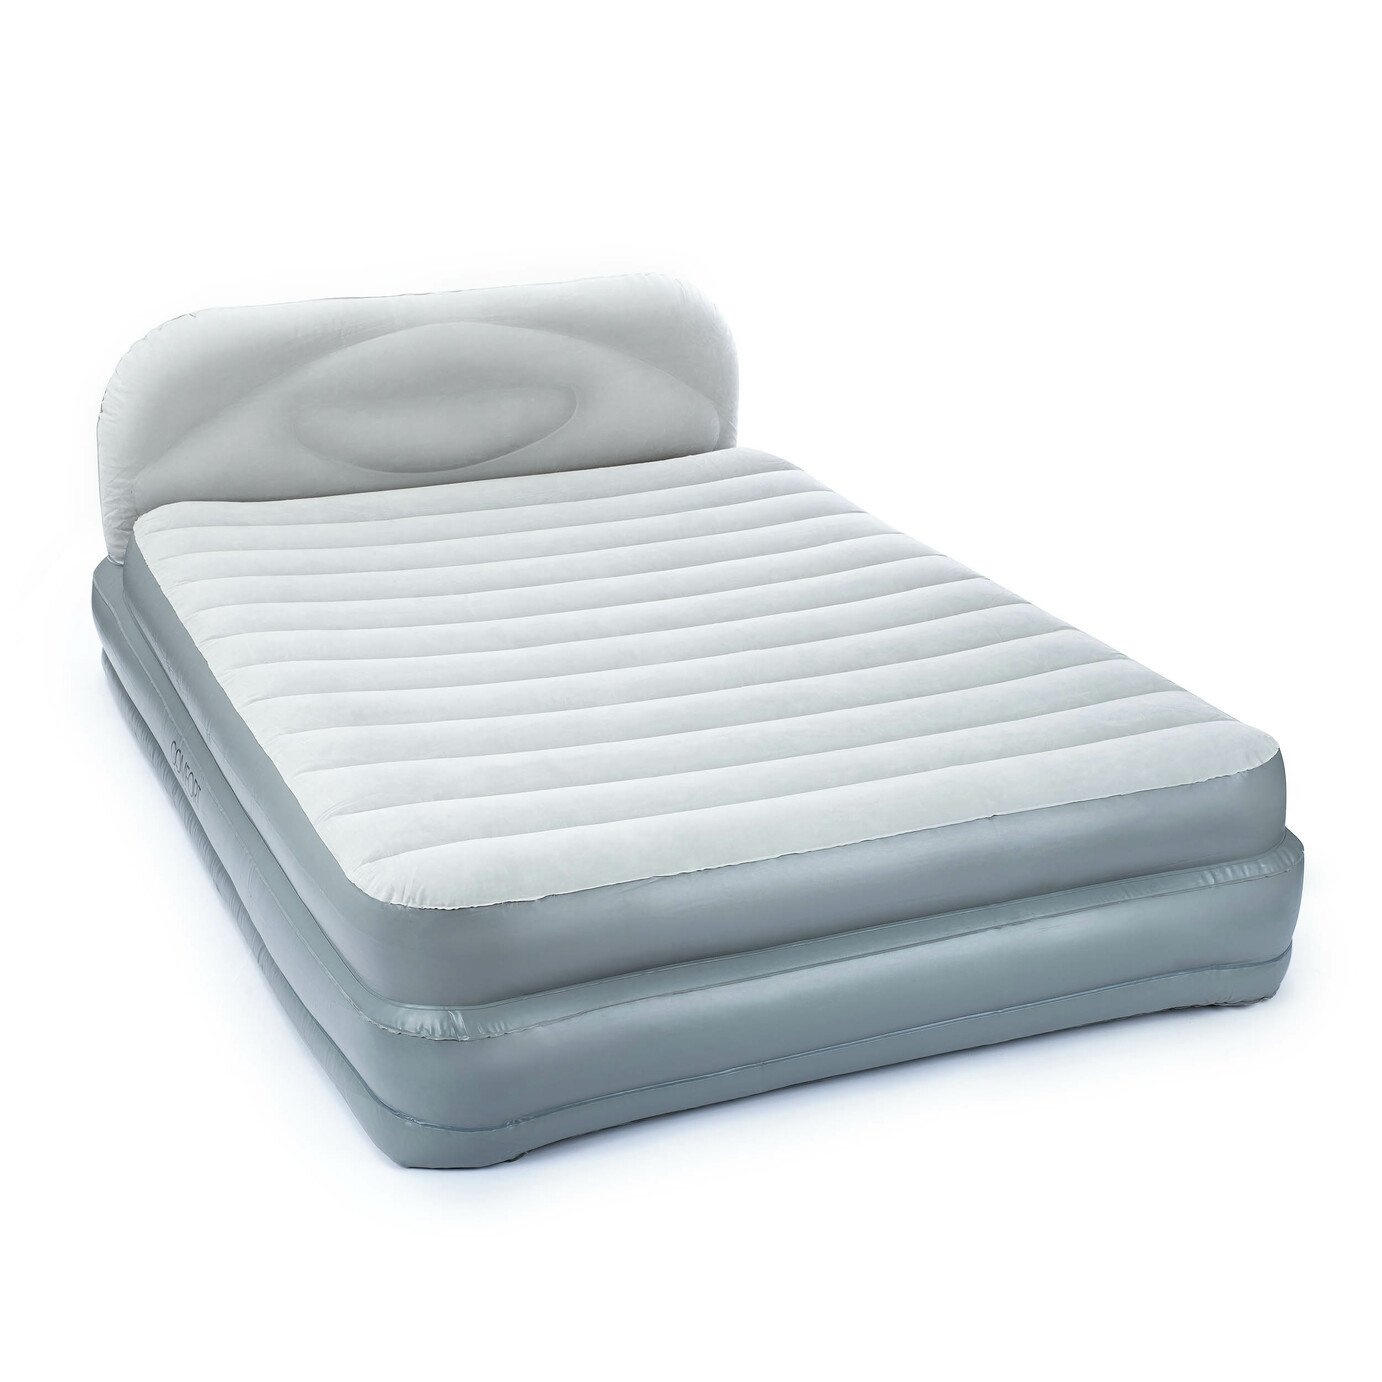 Bestway Comfort Quest Soft Back Air Bed - King